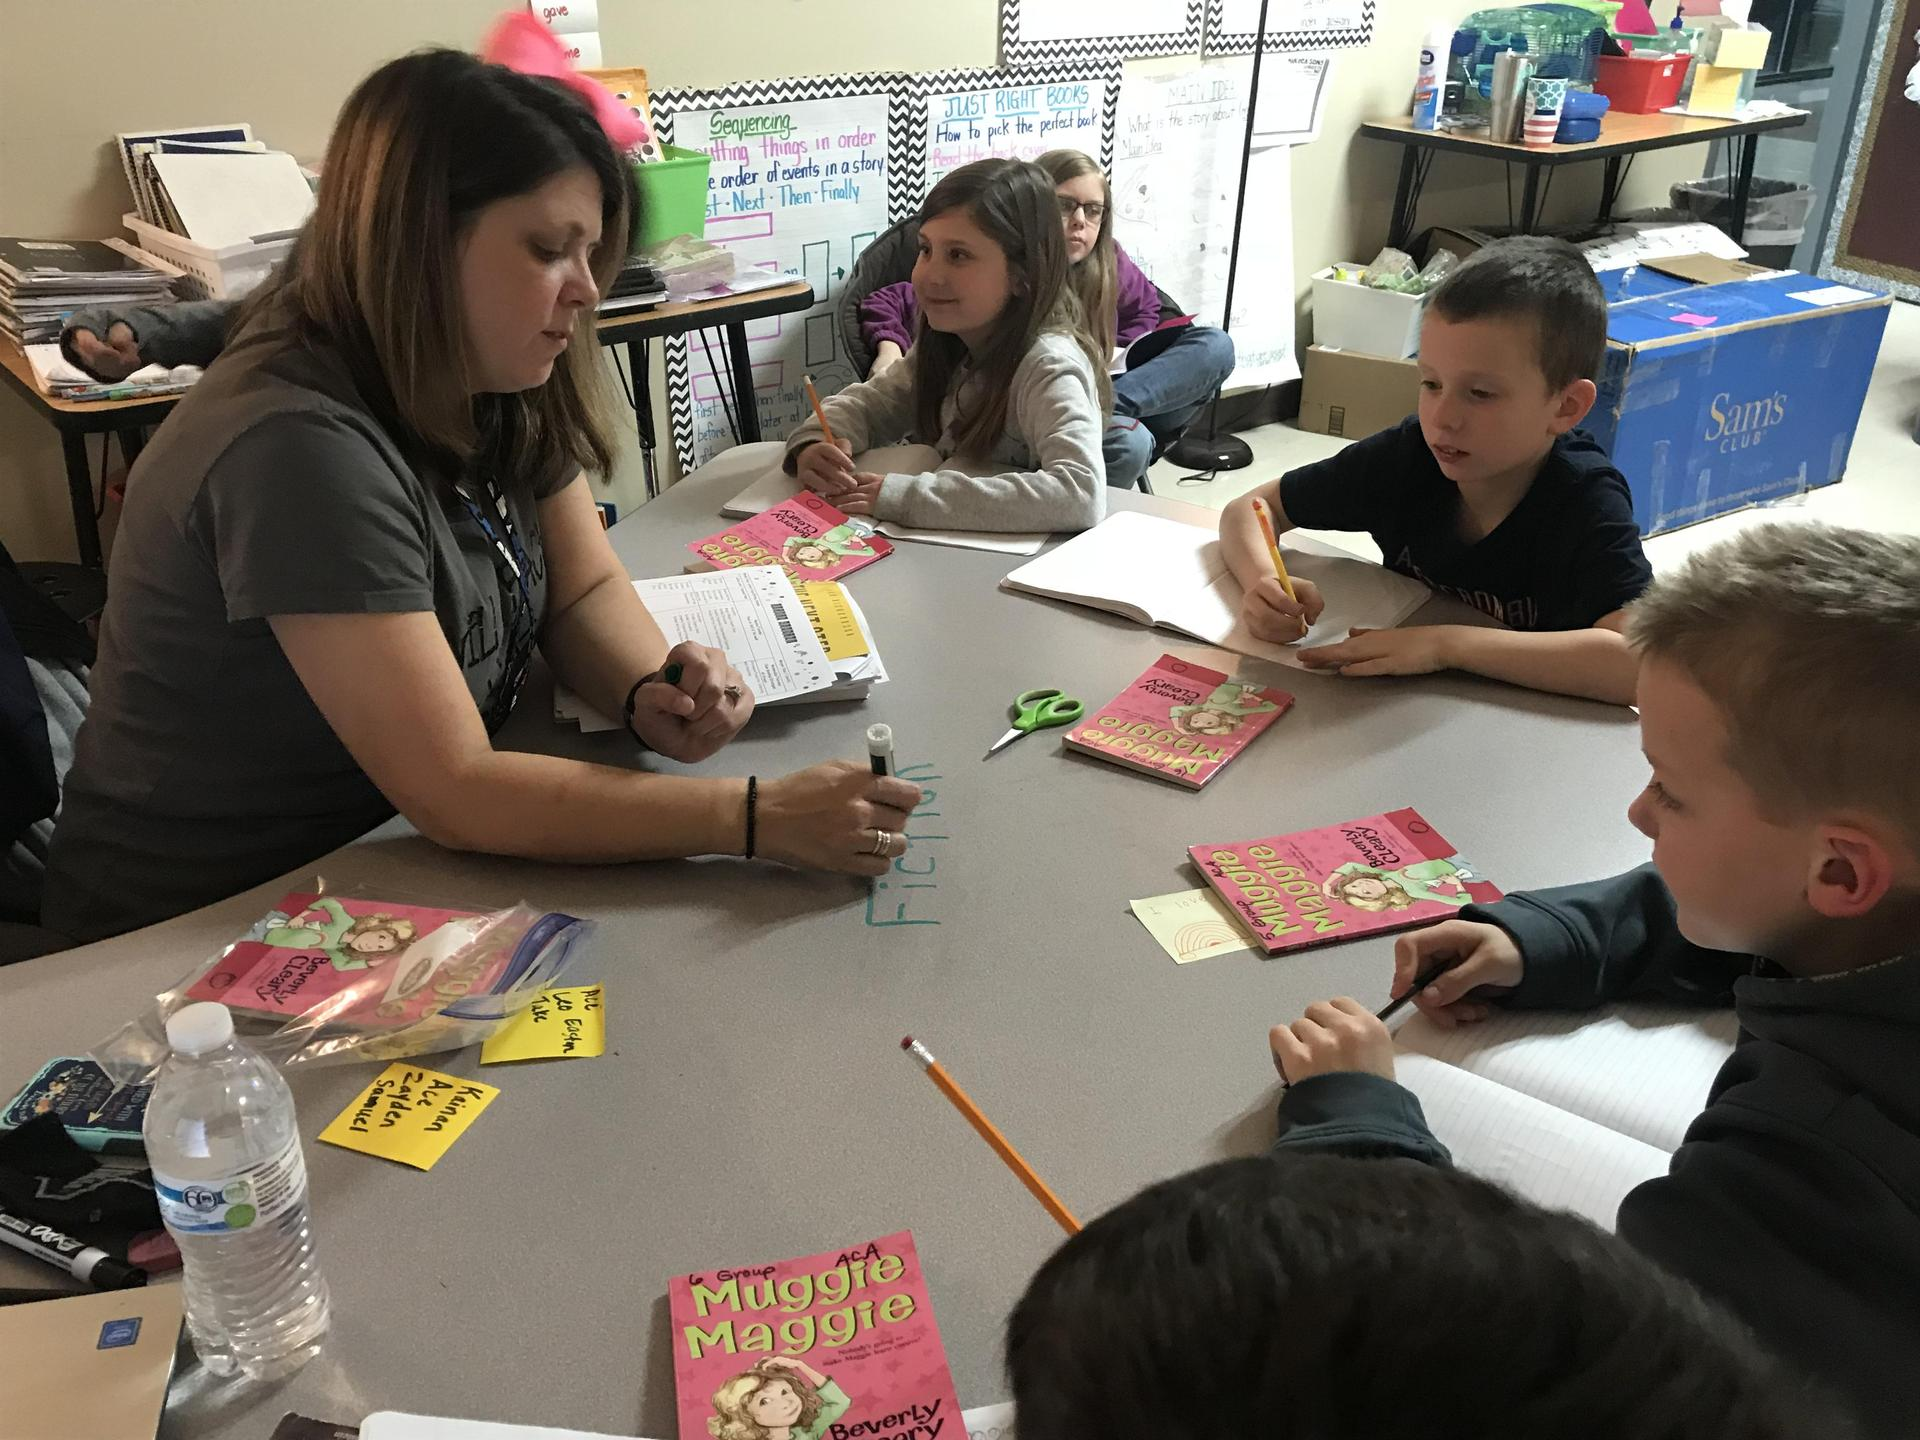 students work with a teacher at a table